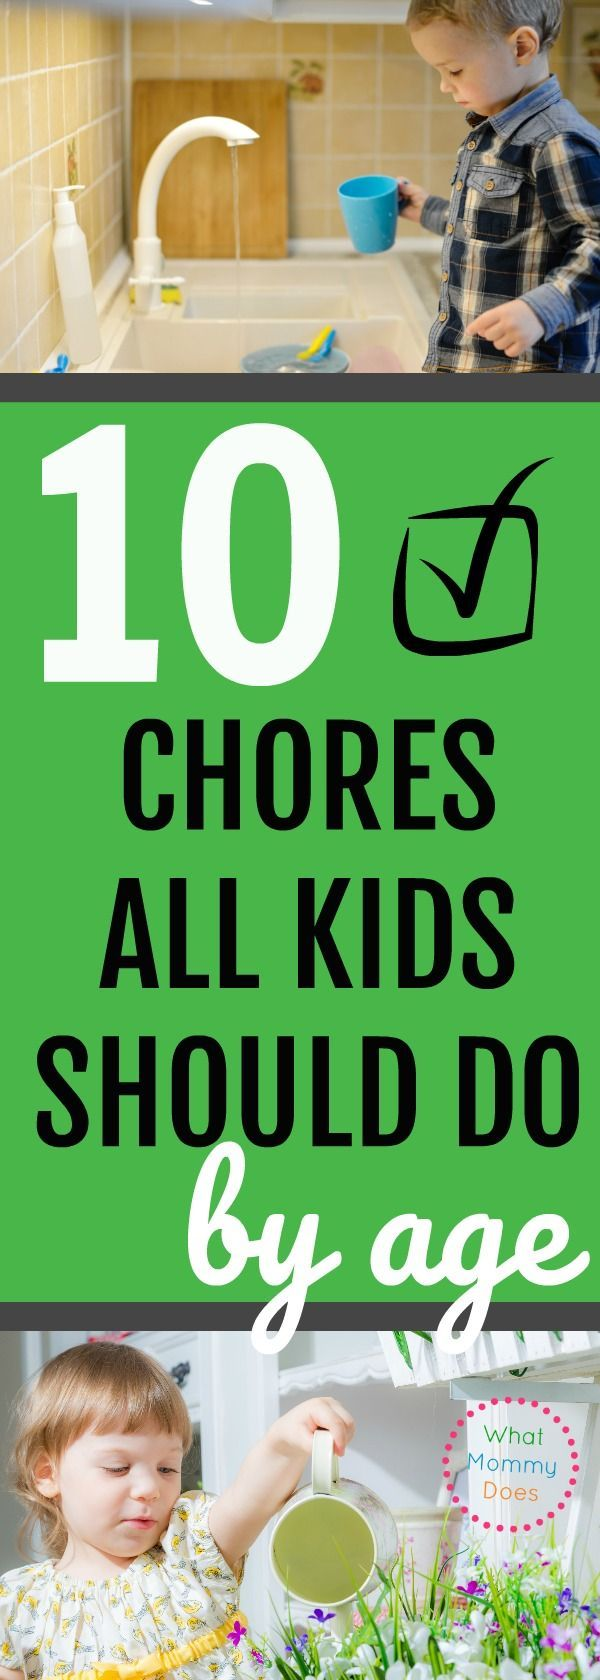 How to make life easier for younger students. Tips for mom